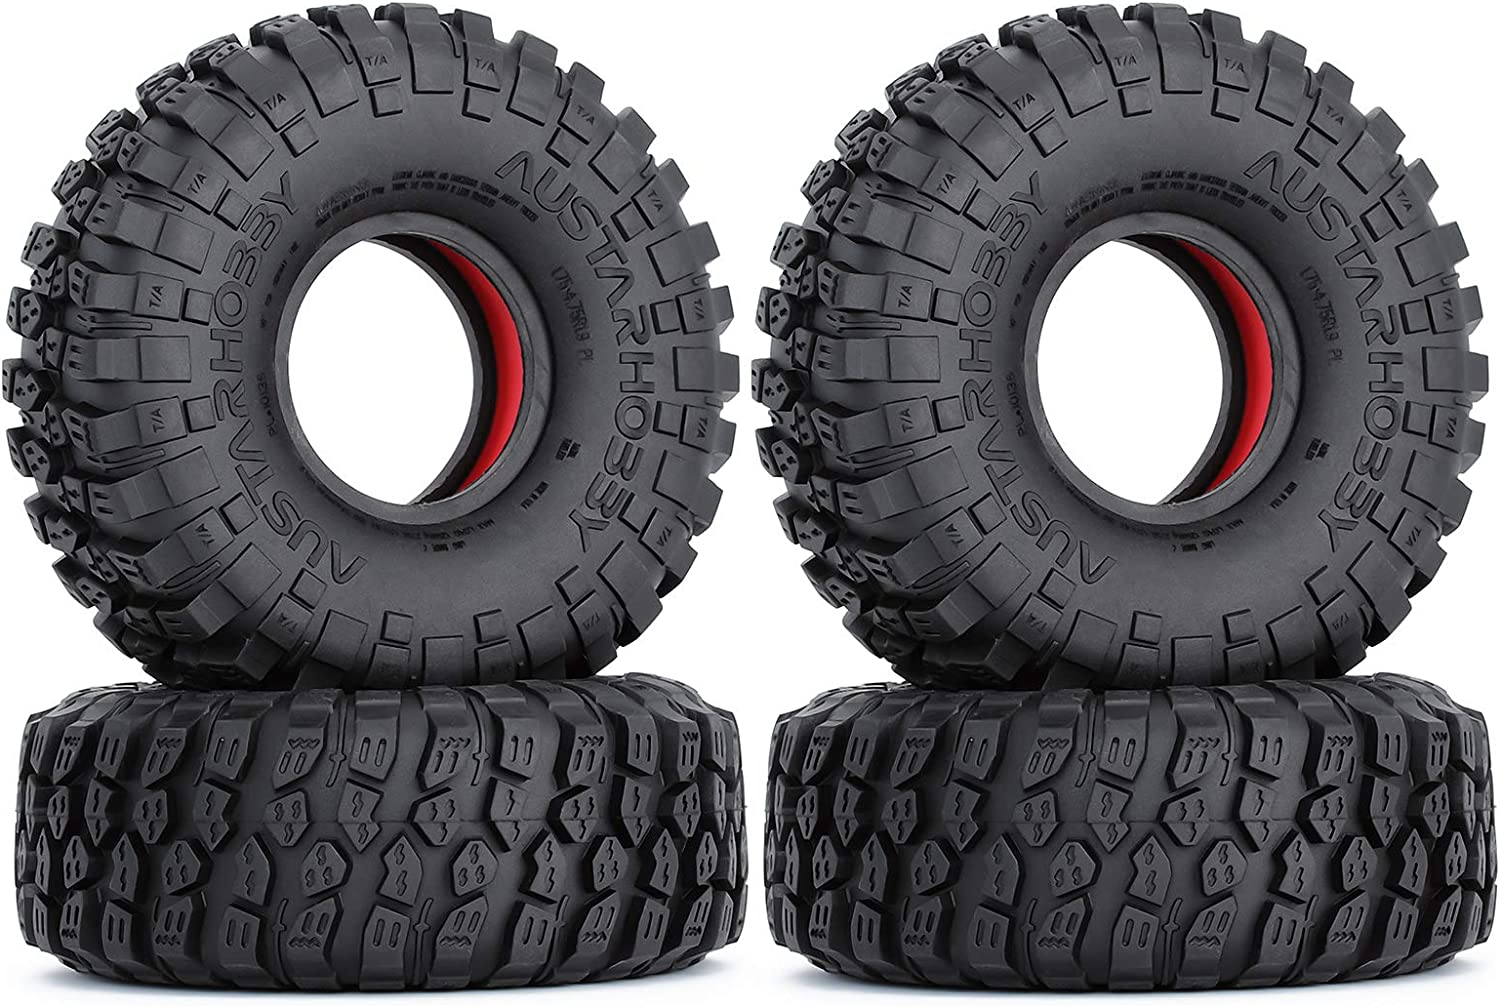 INJORA RC 1.9 Tires Set with Dual Stage Soft Rubber Inner//Foam Outer Inserts for Axial SCX10 90046 TRX4 D90 Redcat Gen8 Remote Control Climber Car,4pcs